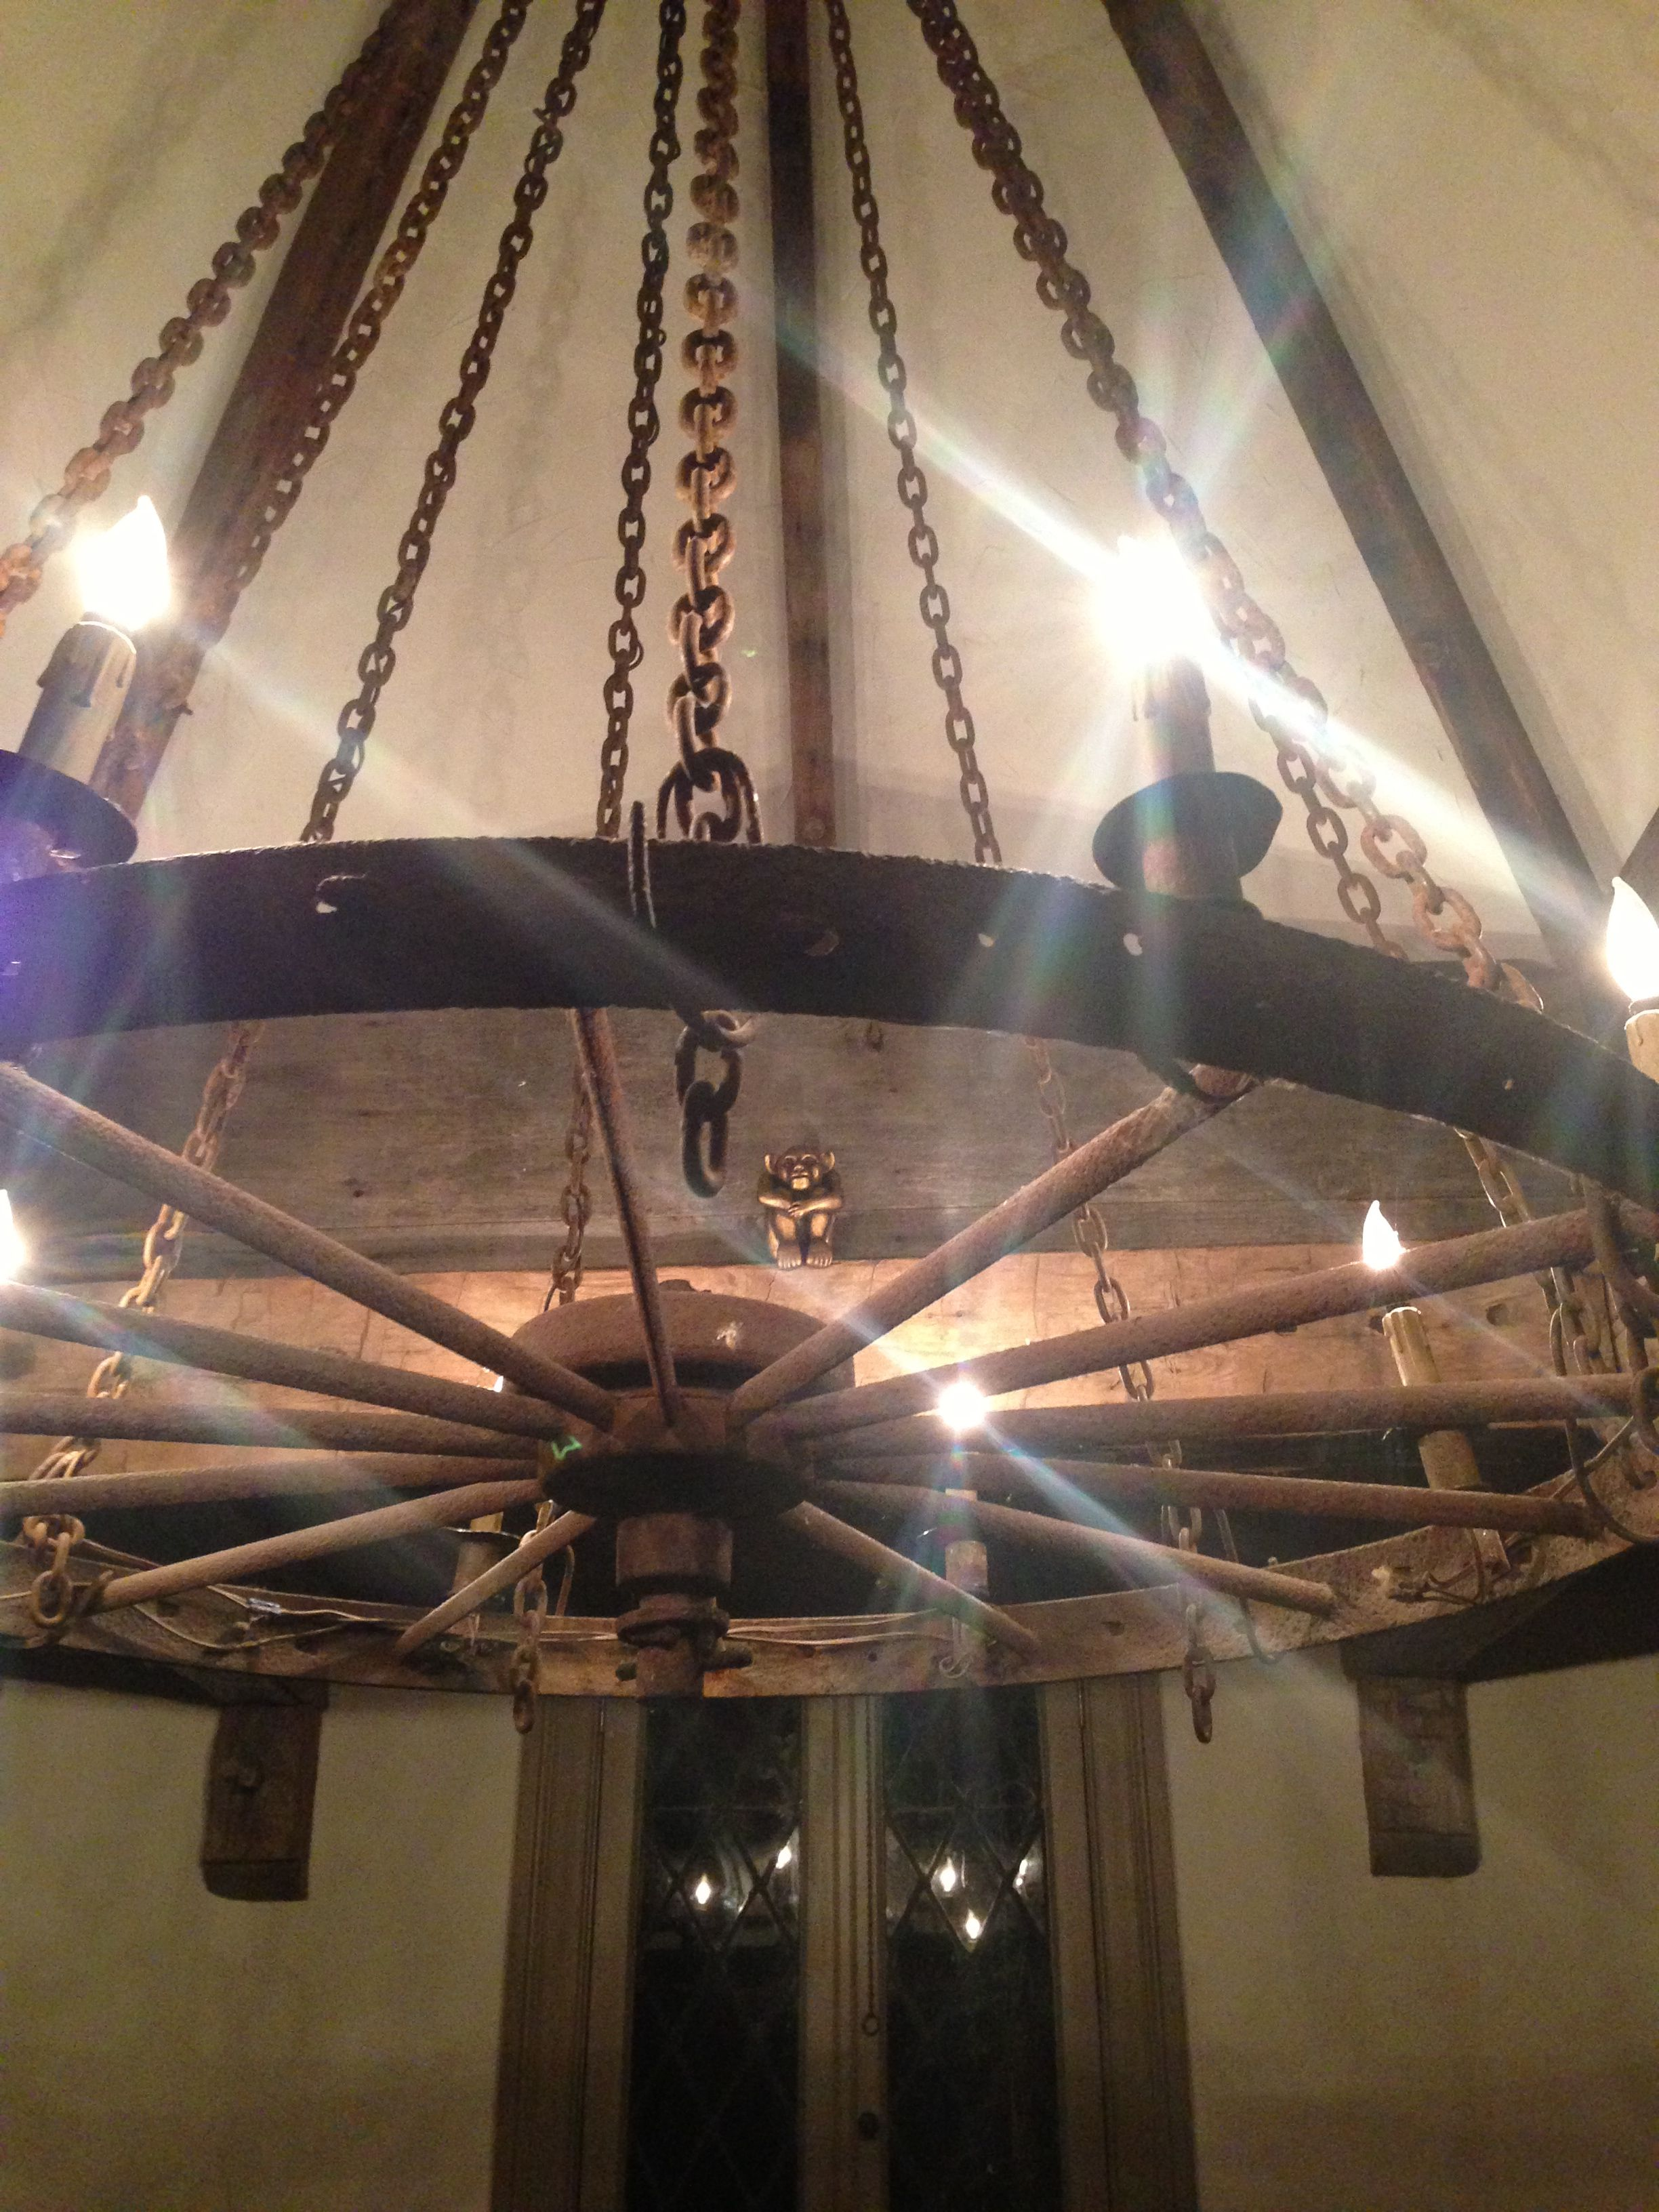 The Kitchen Light Is An Old Wagon Wheel Chandelier Suspended By Chains From Turret Center